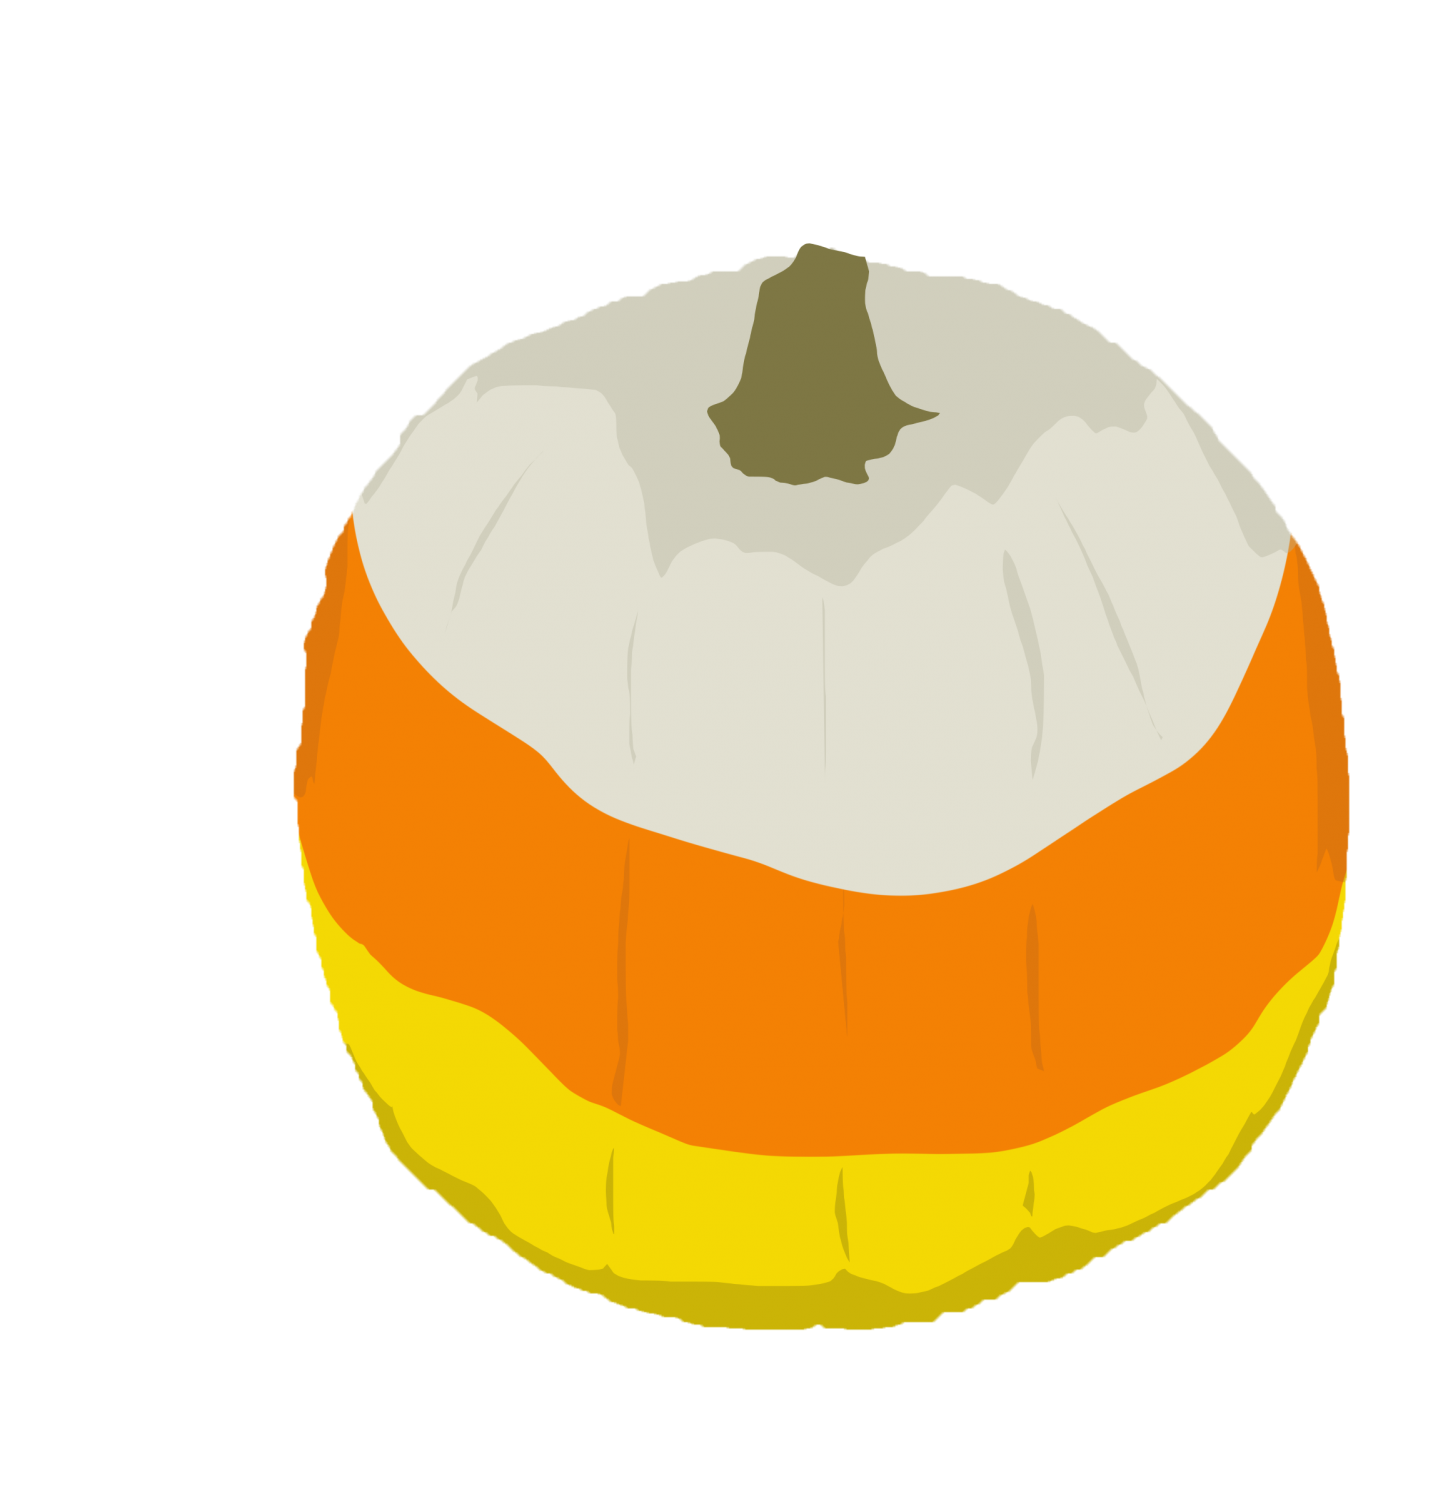 Painting a pumpkin like candy corn is one way to decorate a pumpkin without carving.